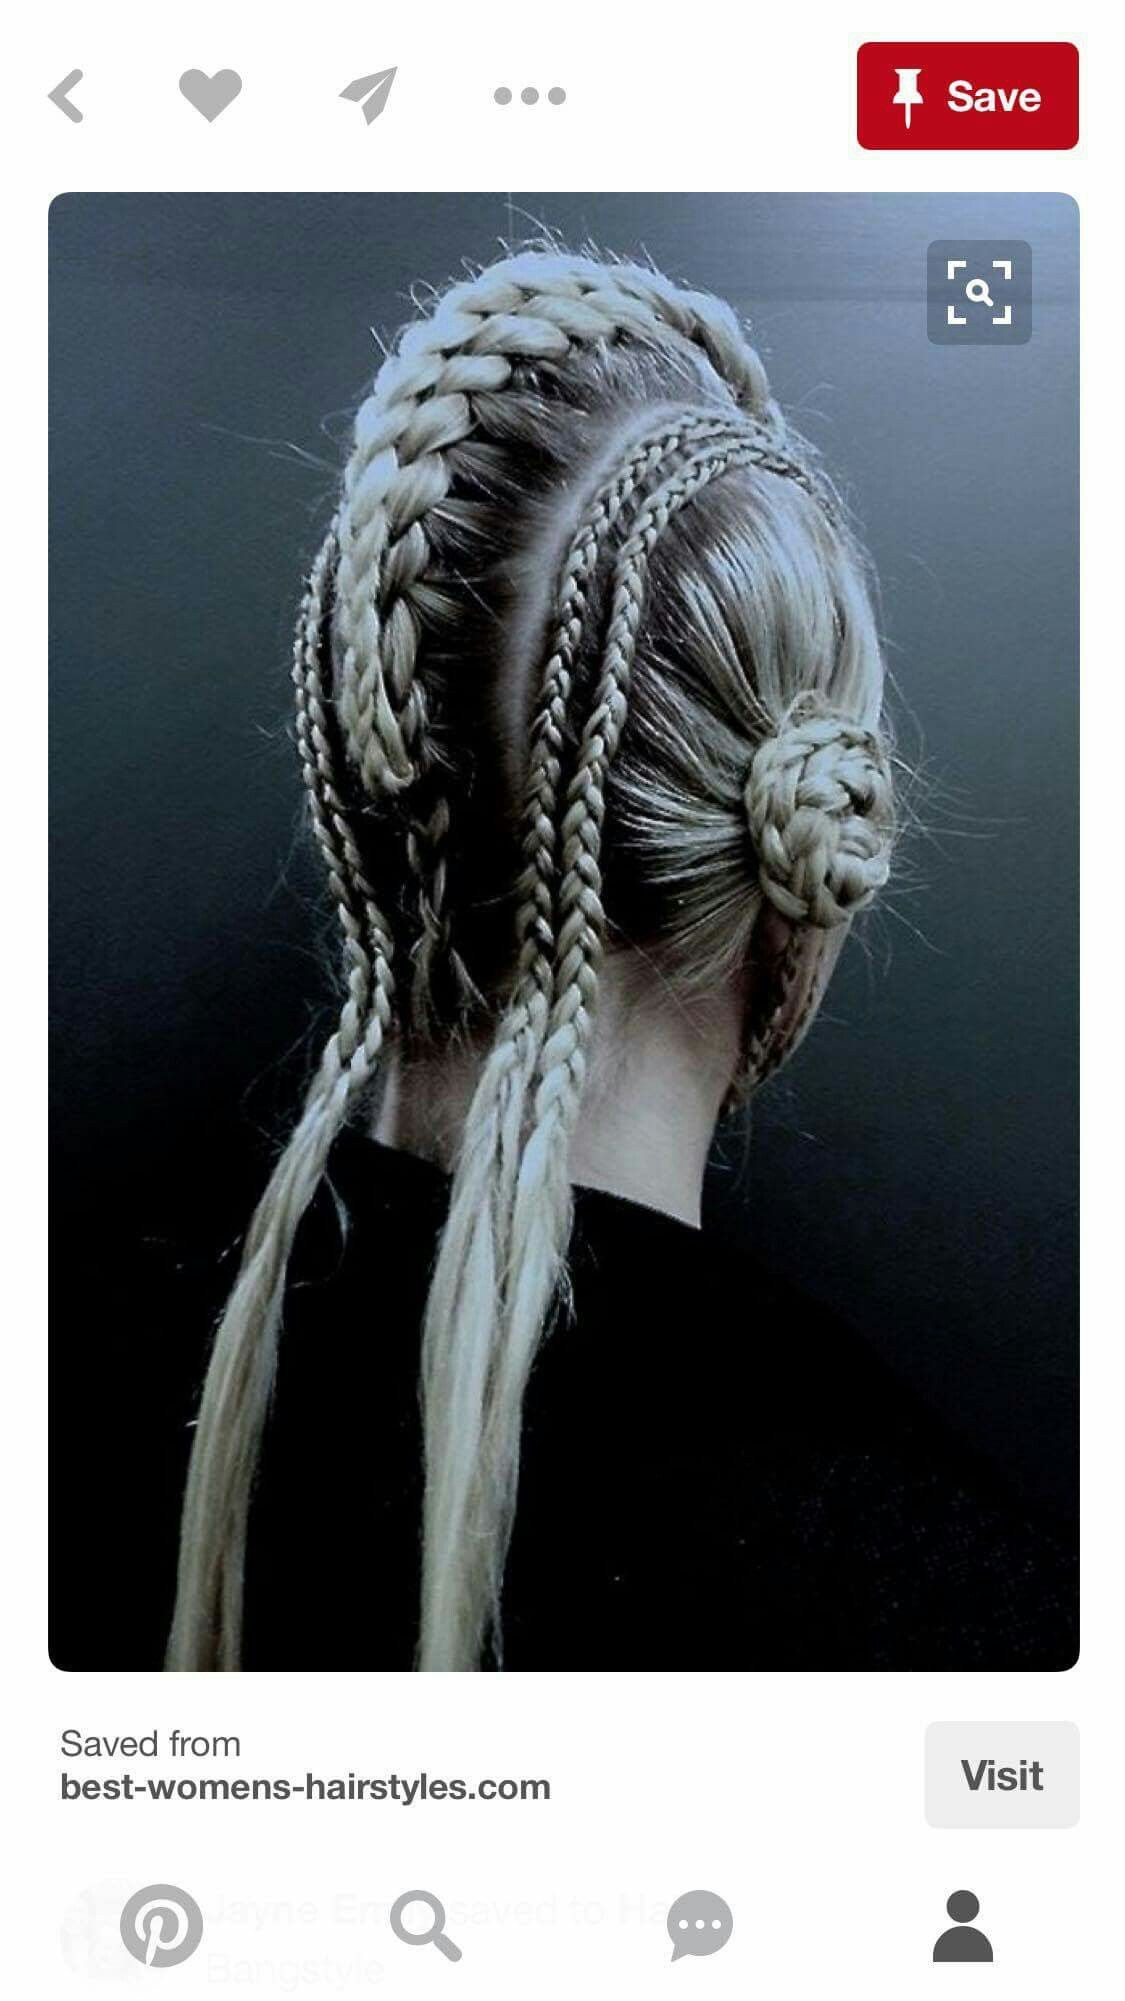 This image represents the style of hair i wish to create for my